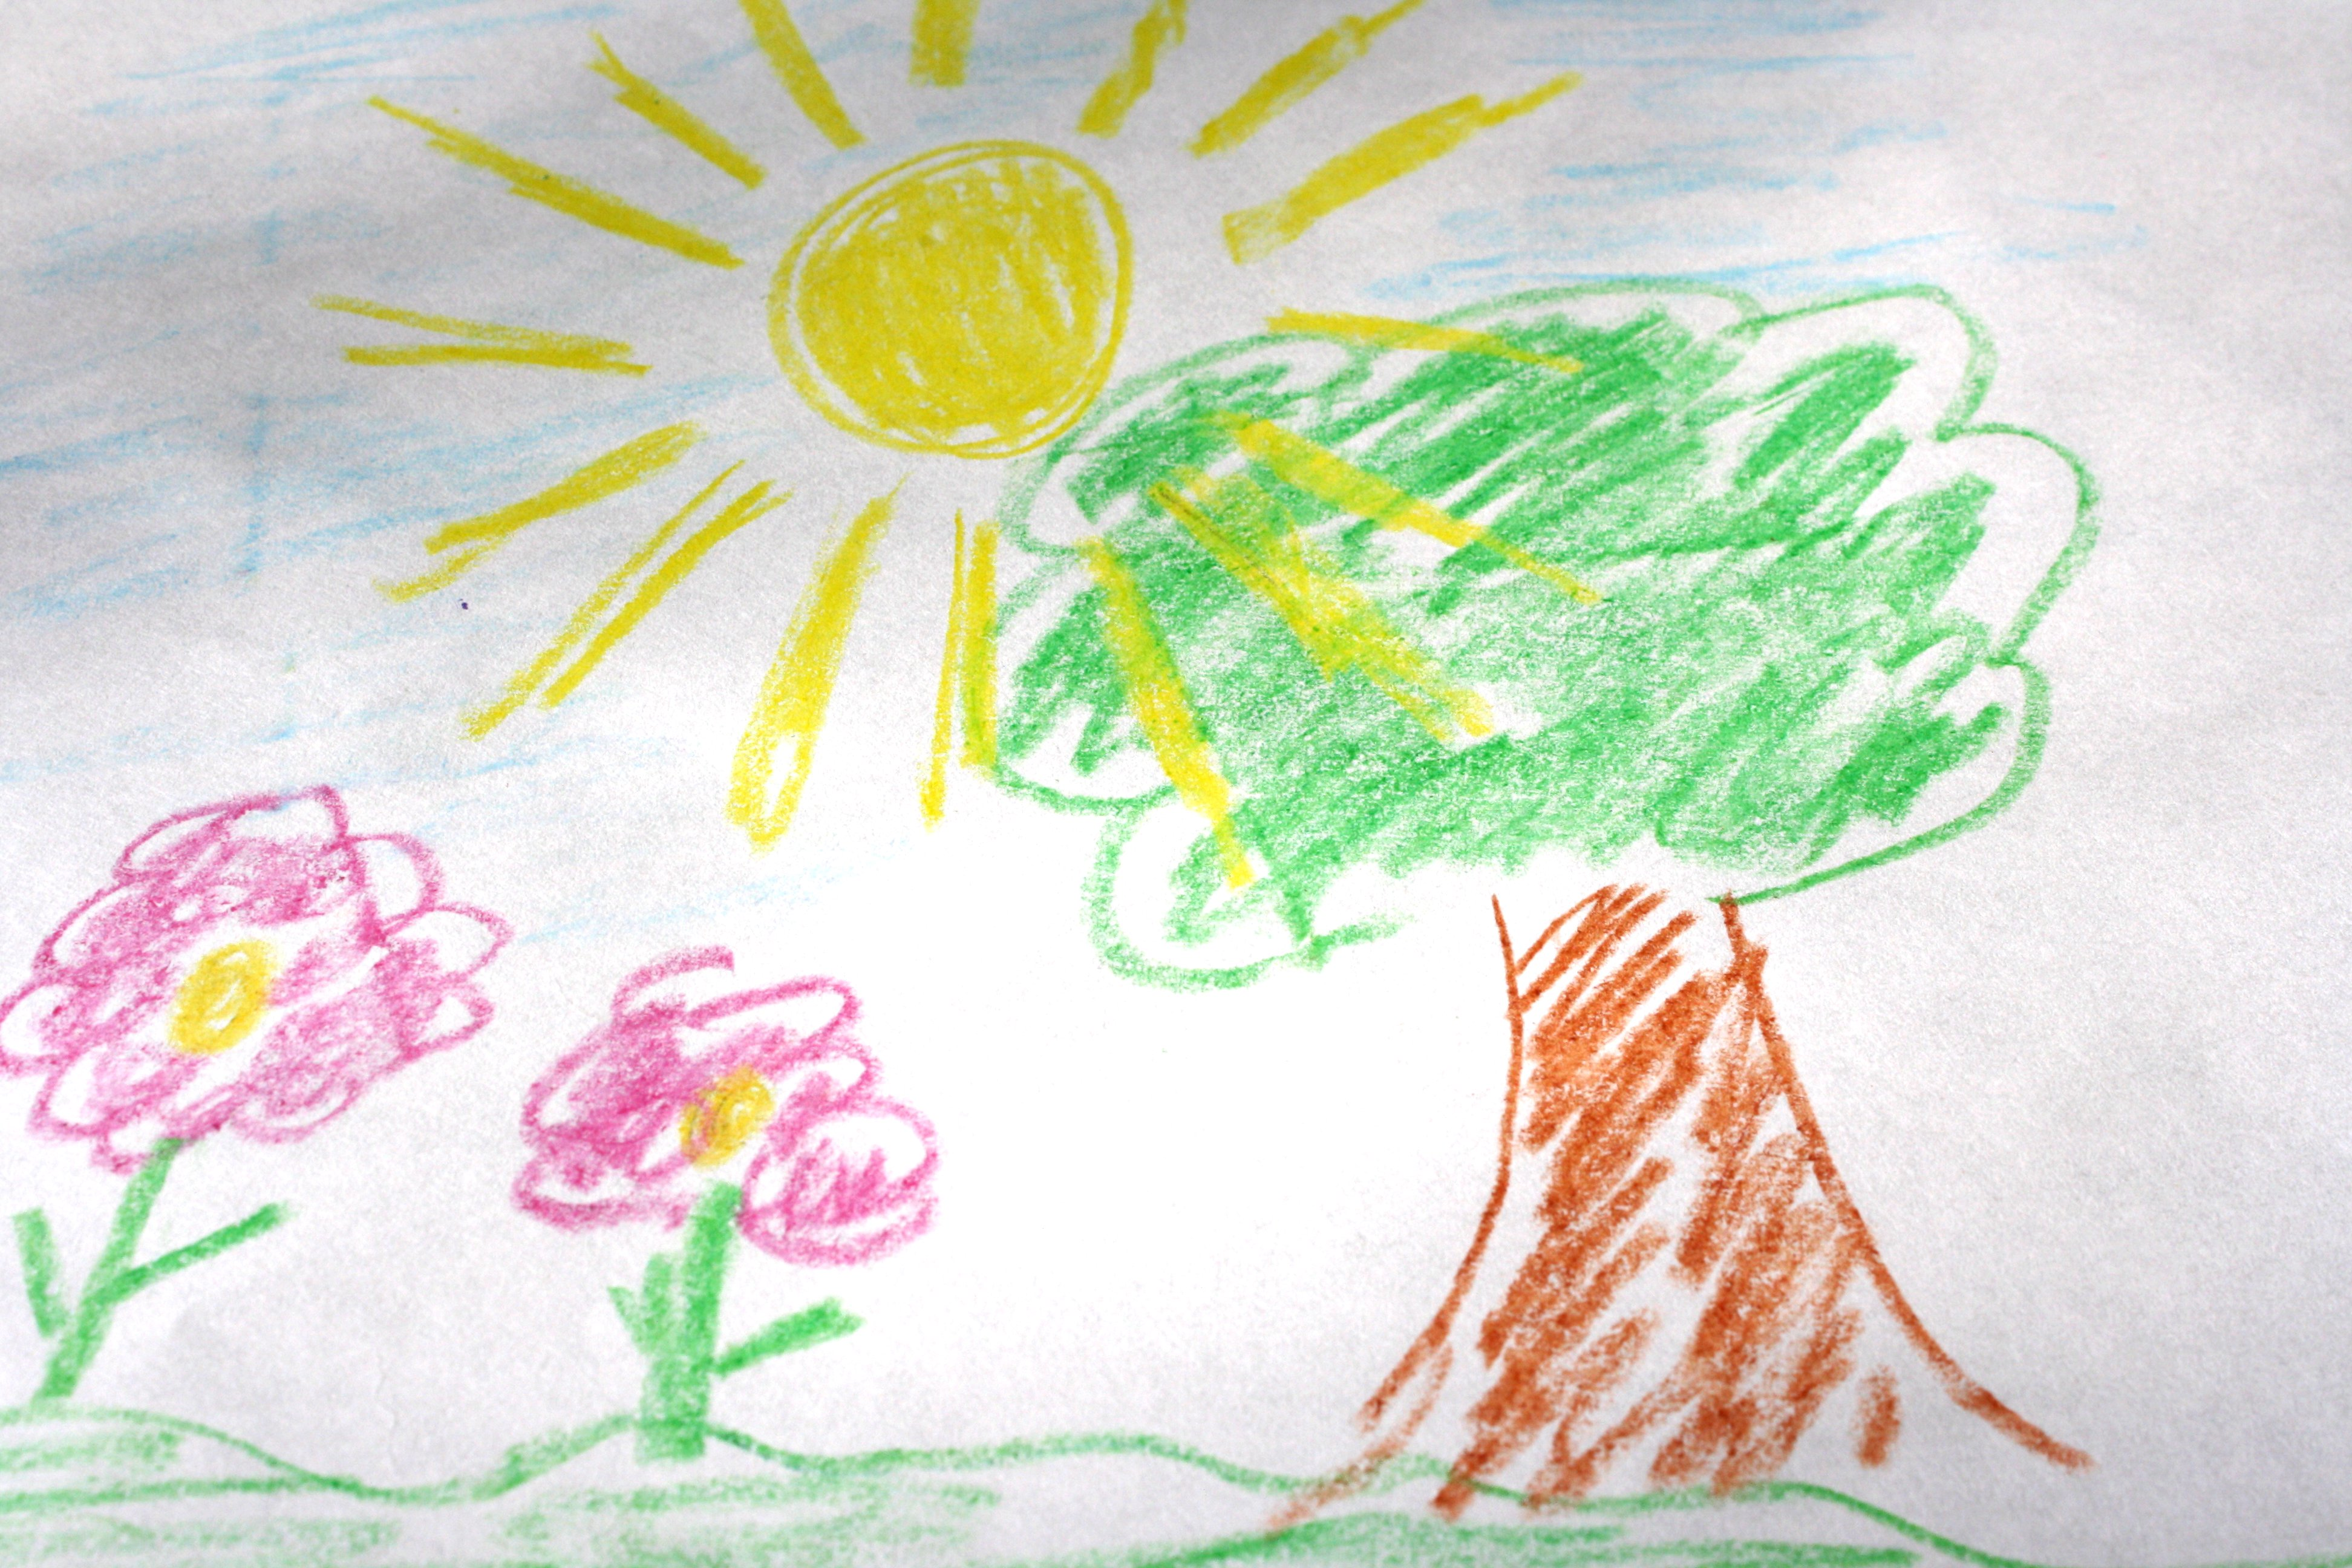 3888x2592 Child's Crayon Drawing Of Tree With Sun And Flowers Picture Free